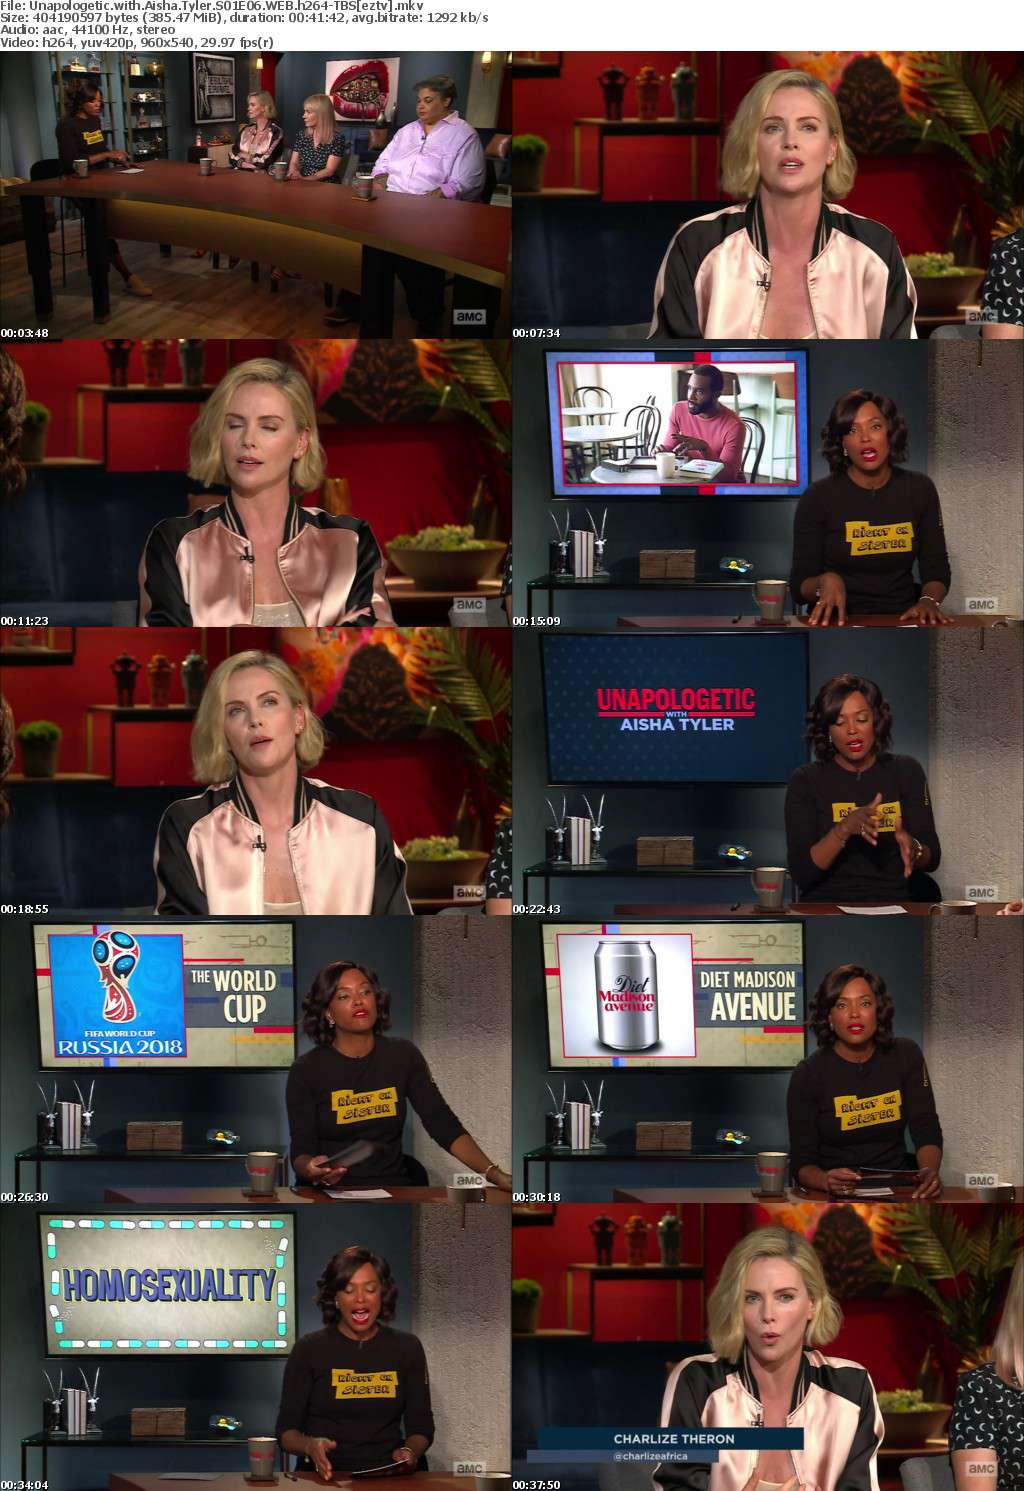 Unapologetic with Aisha Tyler S01E06 WEB h264-TBS